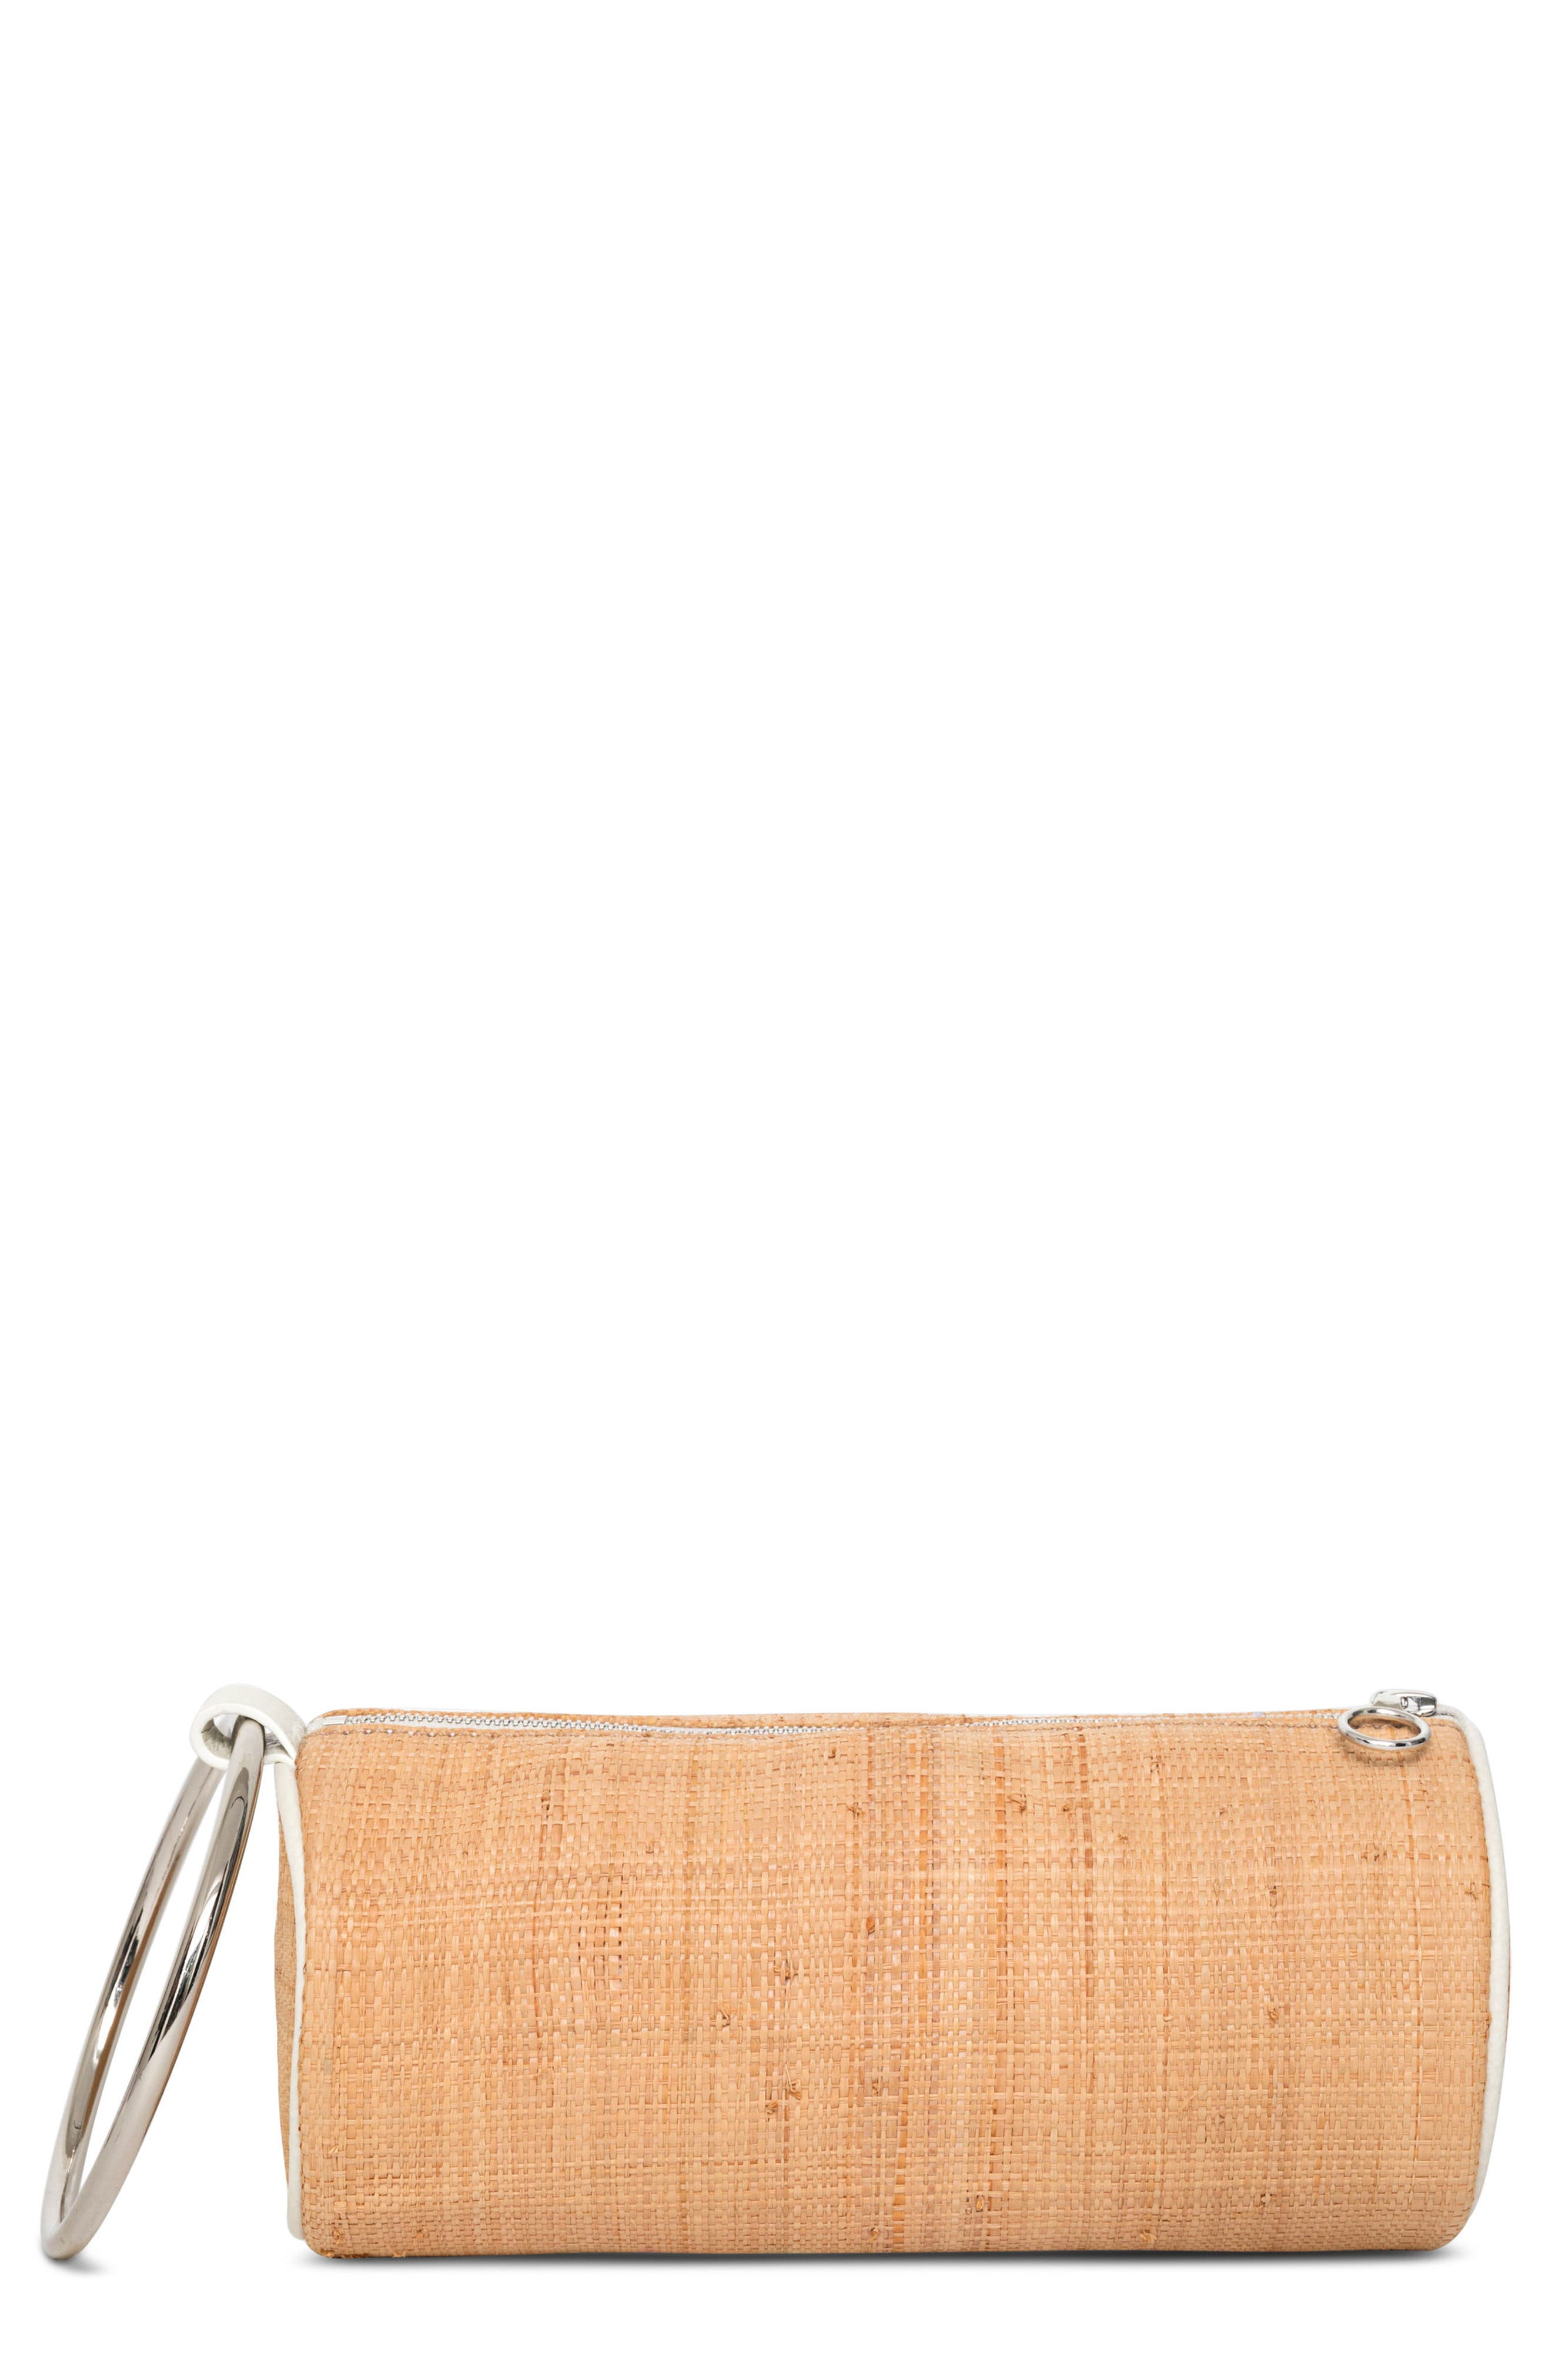 Straw Duffel Wristlet Clutch,                         Main,                         color, 250